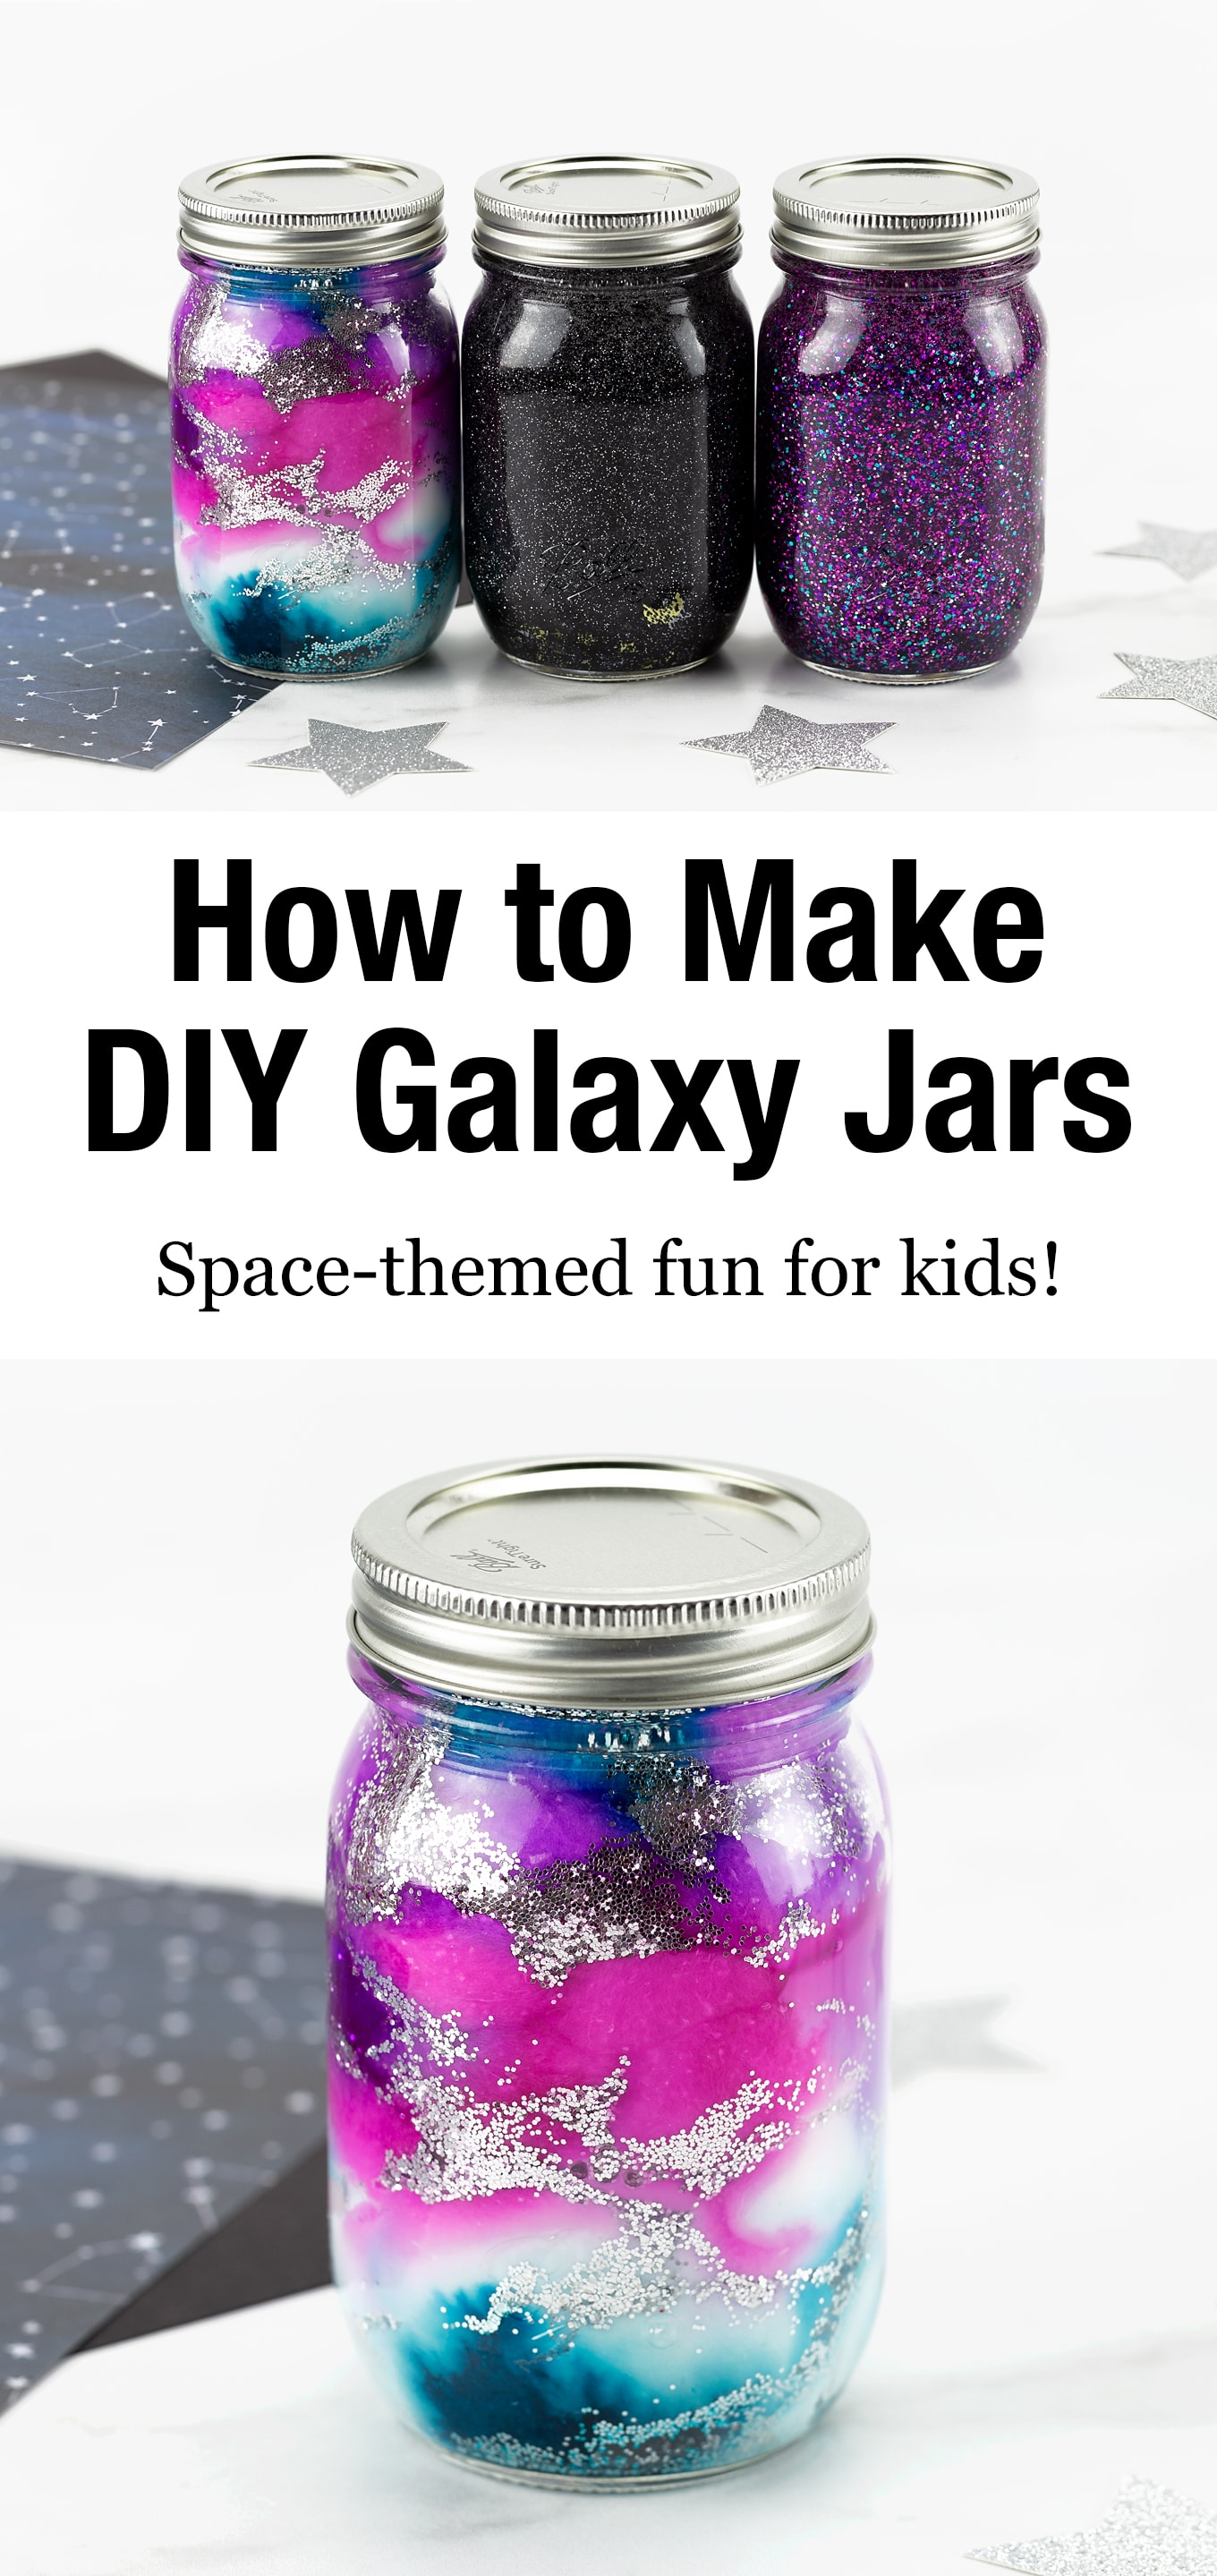 Follow along with our easy step-by-step directions and video tutorial so you can learn how to make your own mesmerizing Galaxy Glitter Jars! Simple and fun for kids! via @firefliesandmudpies